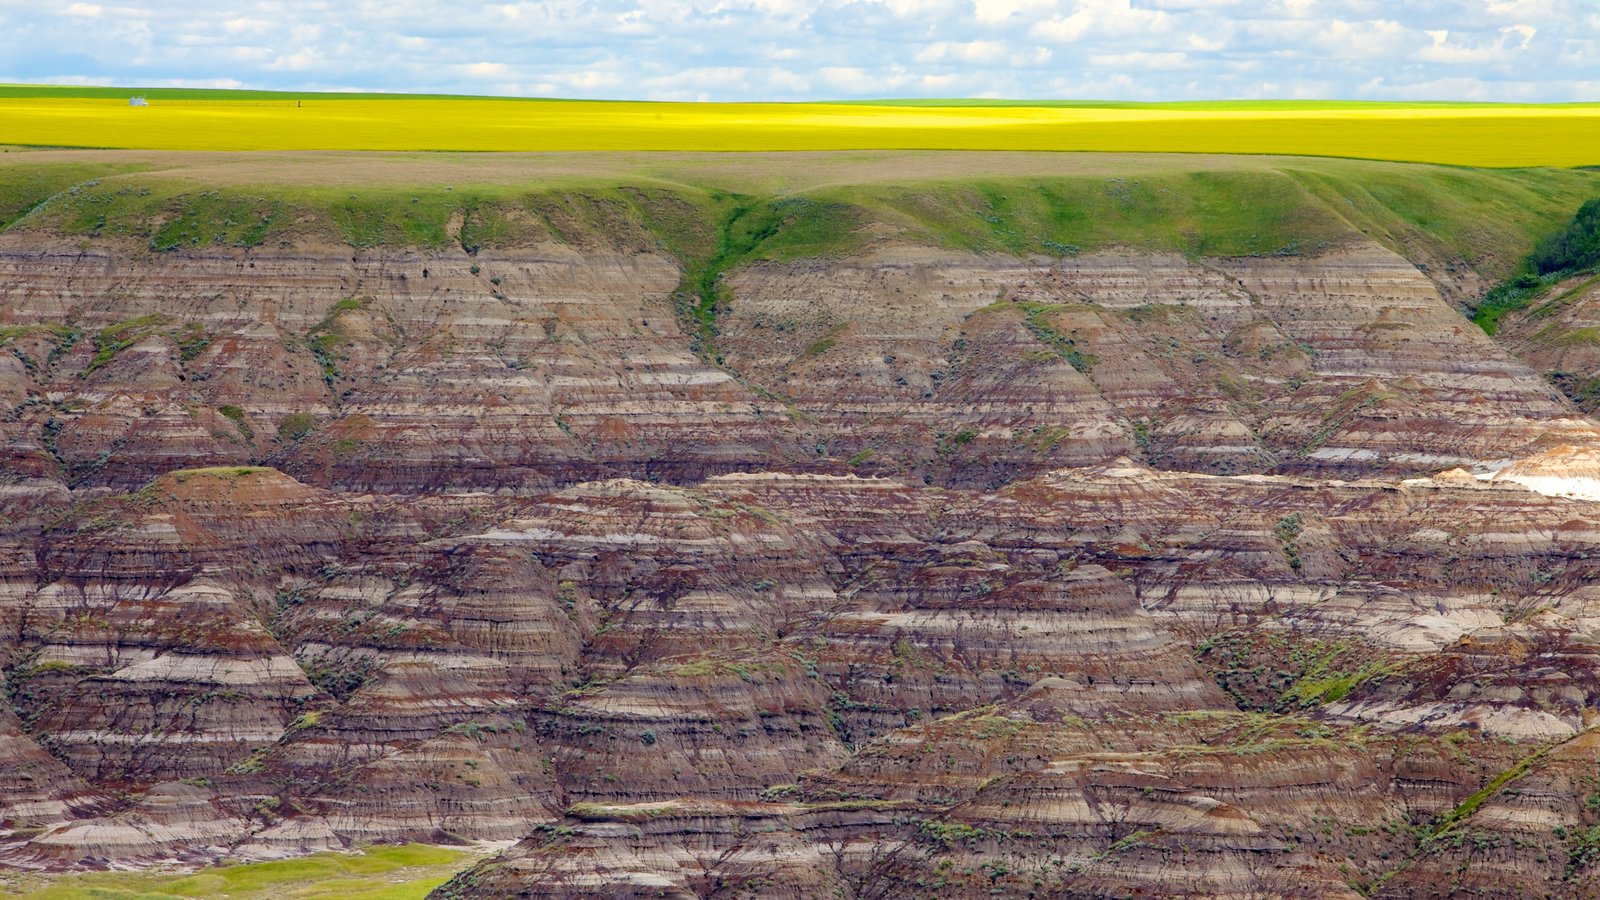 Drumheller featuring landscape views and a gorge or canyon